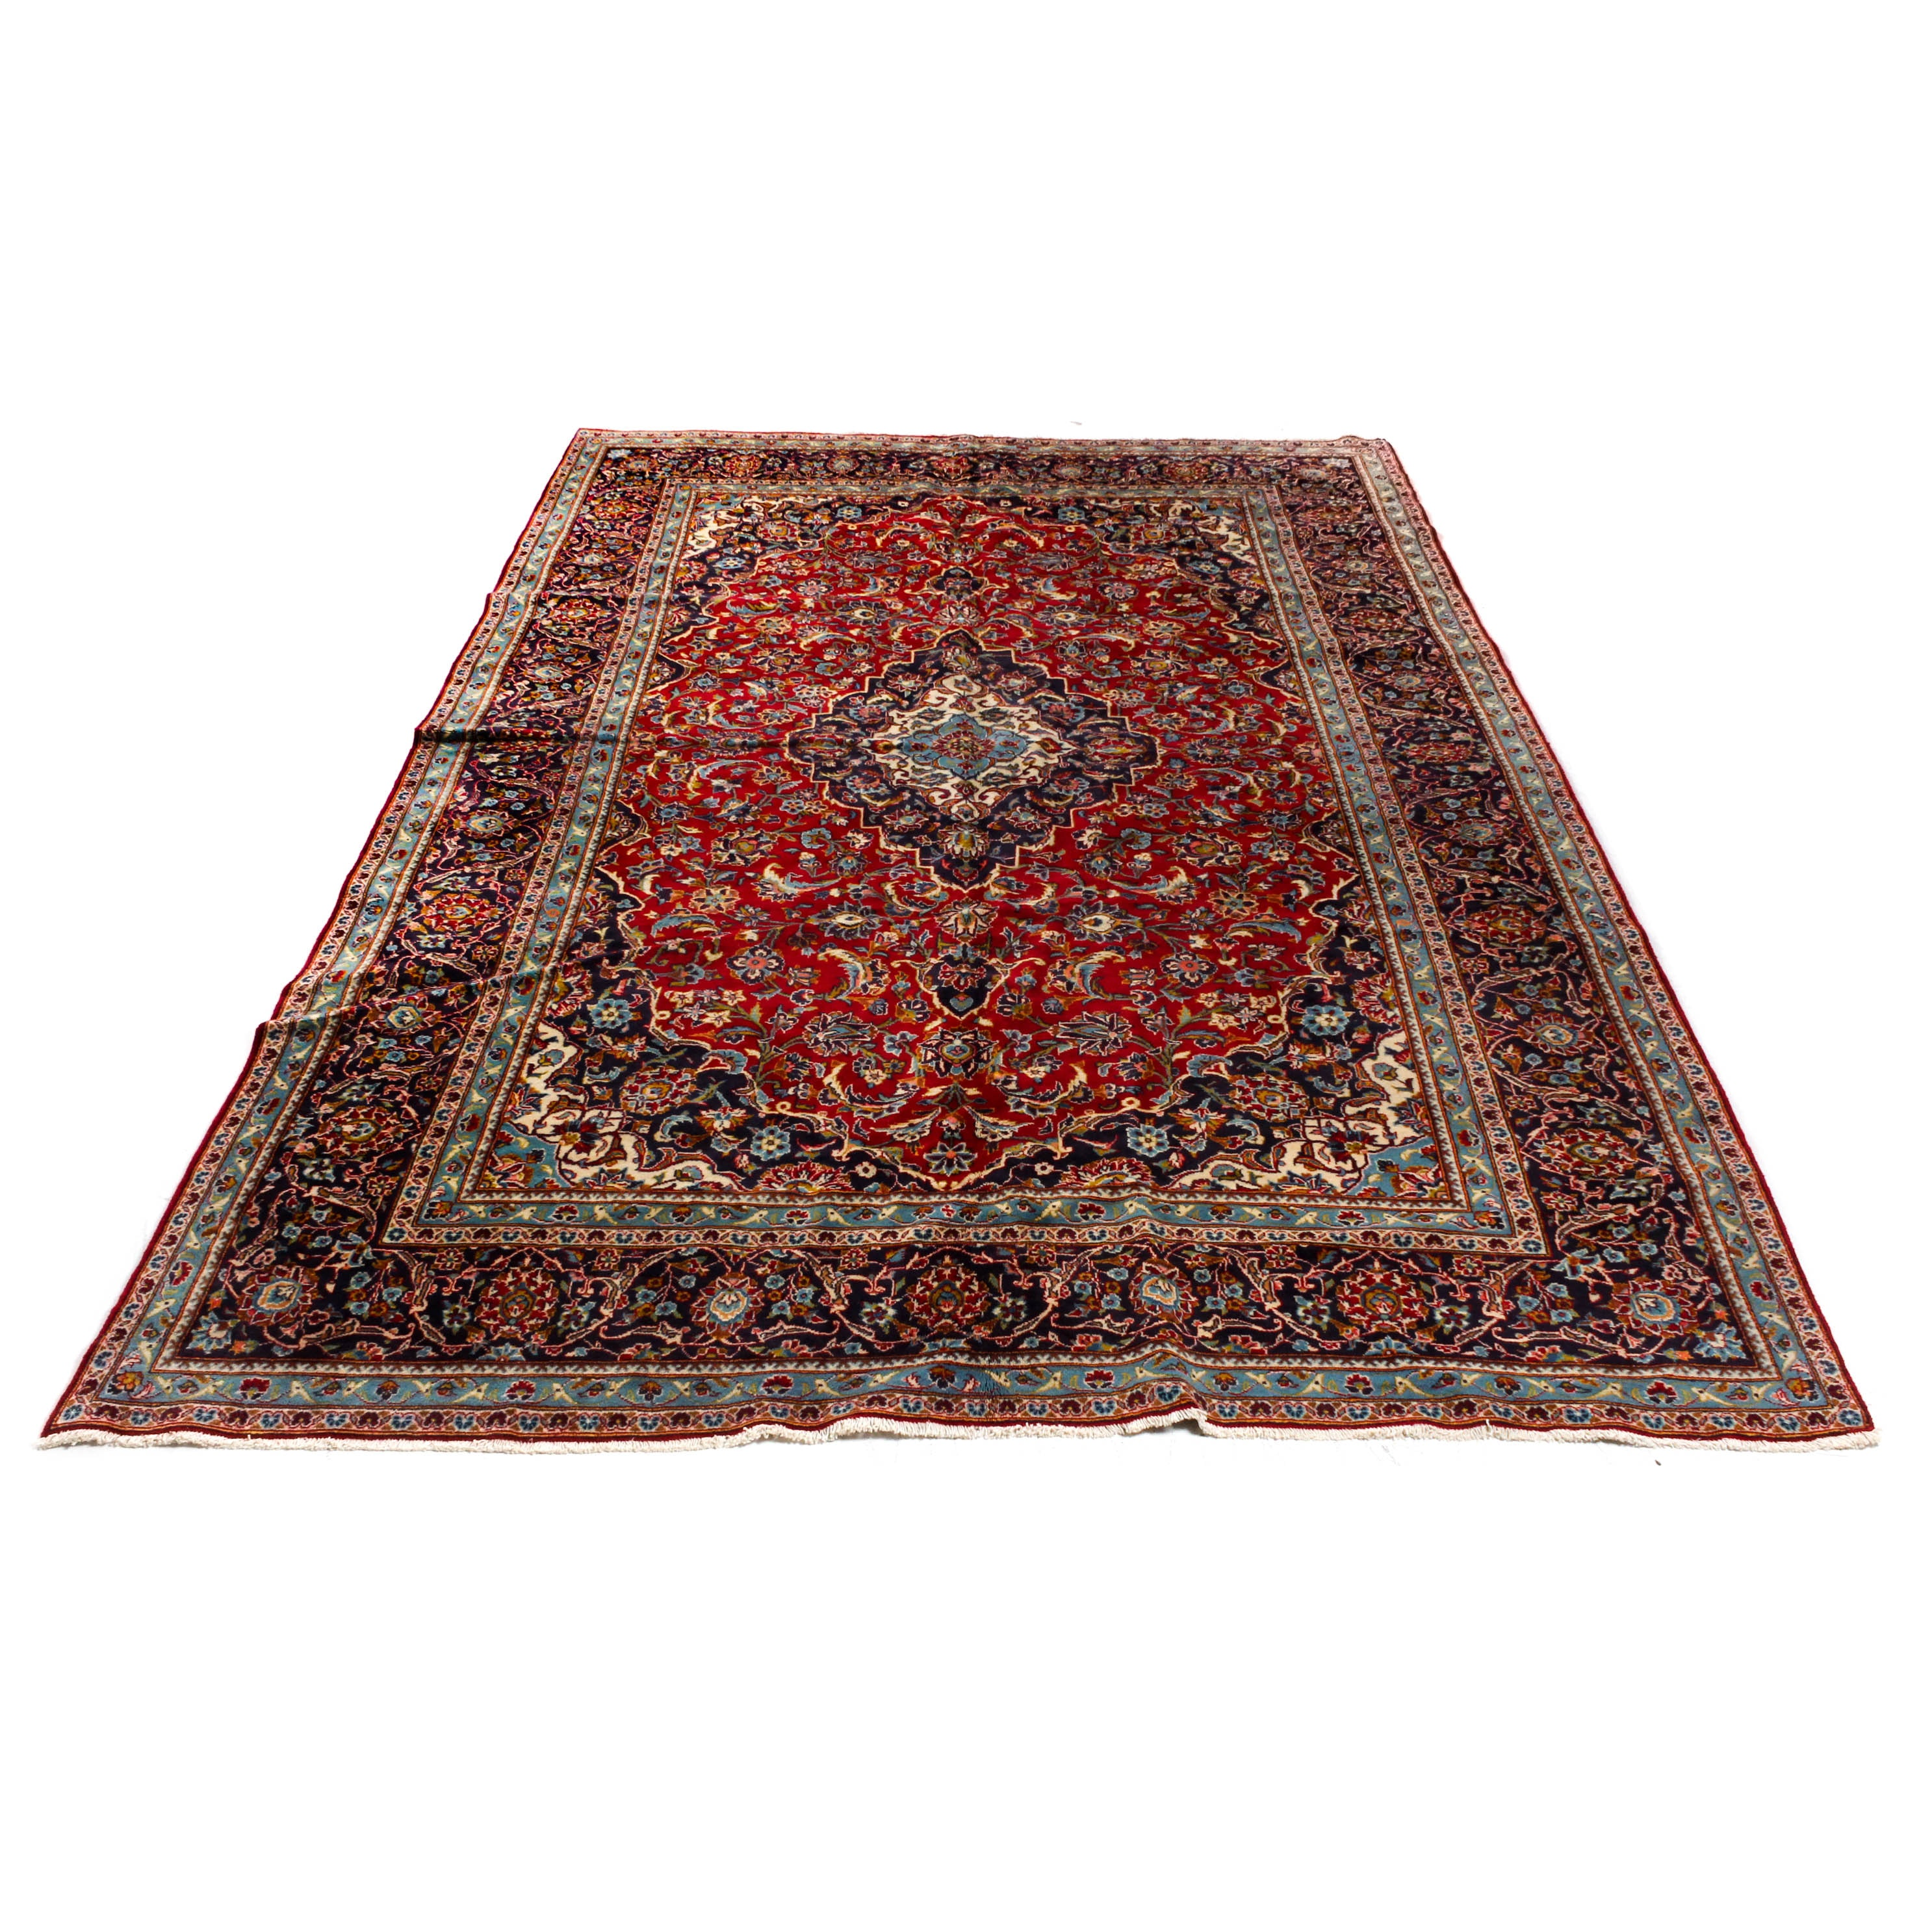 Semi-Antique Hand-Knotted Persian Kashan Room Sized Rug